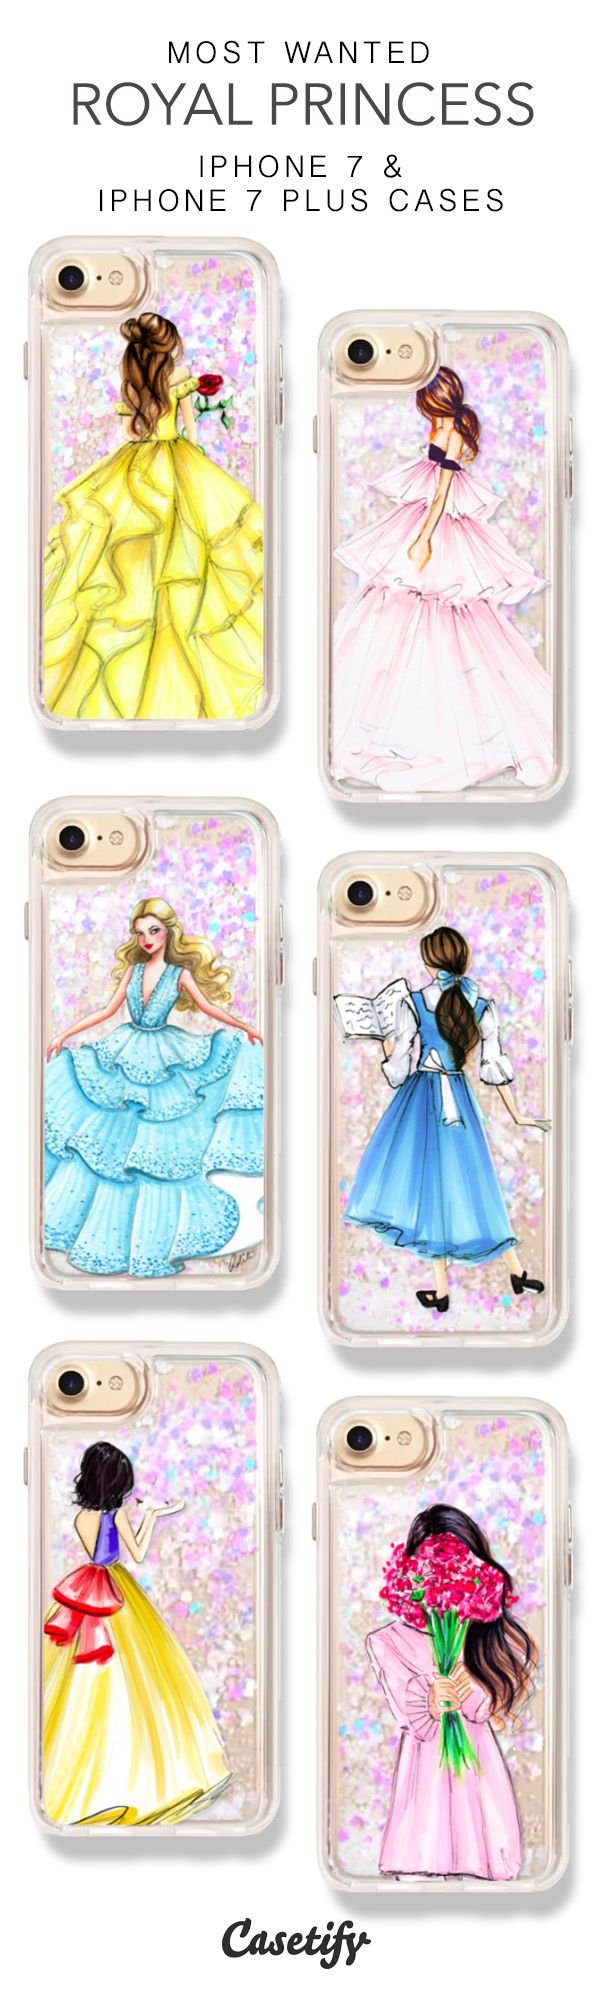 Most Wanted Royal Princess iPhone 7 Cases & iPhone 7 Plus Cases. More Protective Liquid Glitter Princess iPhone case here > https://www.casetify.com/en_US/collections/iphone-7-glitter-cases#/?vc=cBUAcDsCCy